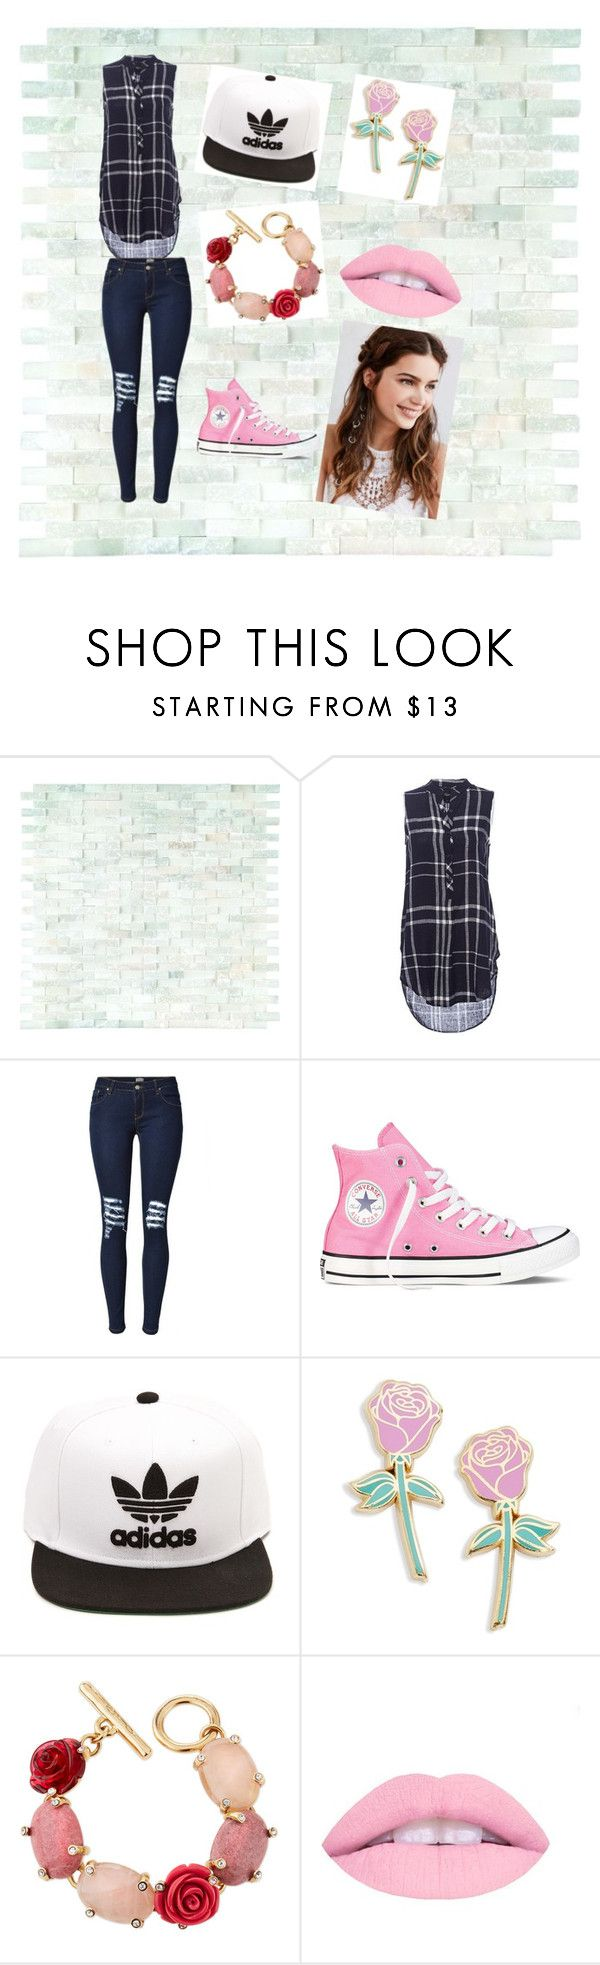 """""""country outfit"""" by raniadayaa ❤ liked on Polyvore featuring Converse, adidas, Big Bud Press, Oscar de la Renta, REGALROSE, country, women, polyvorfashion and countryoutfits"""